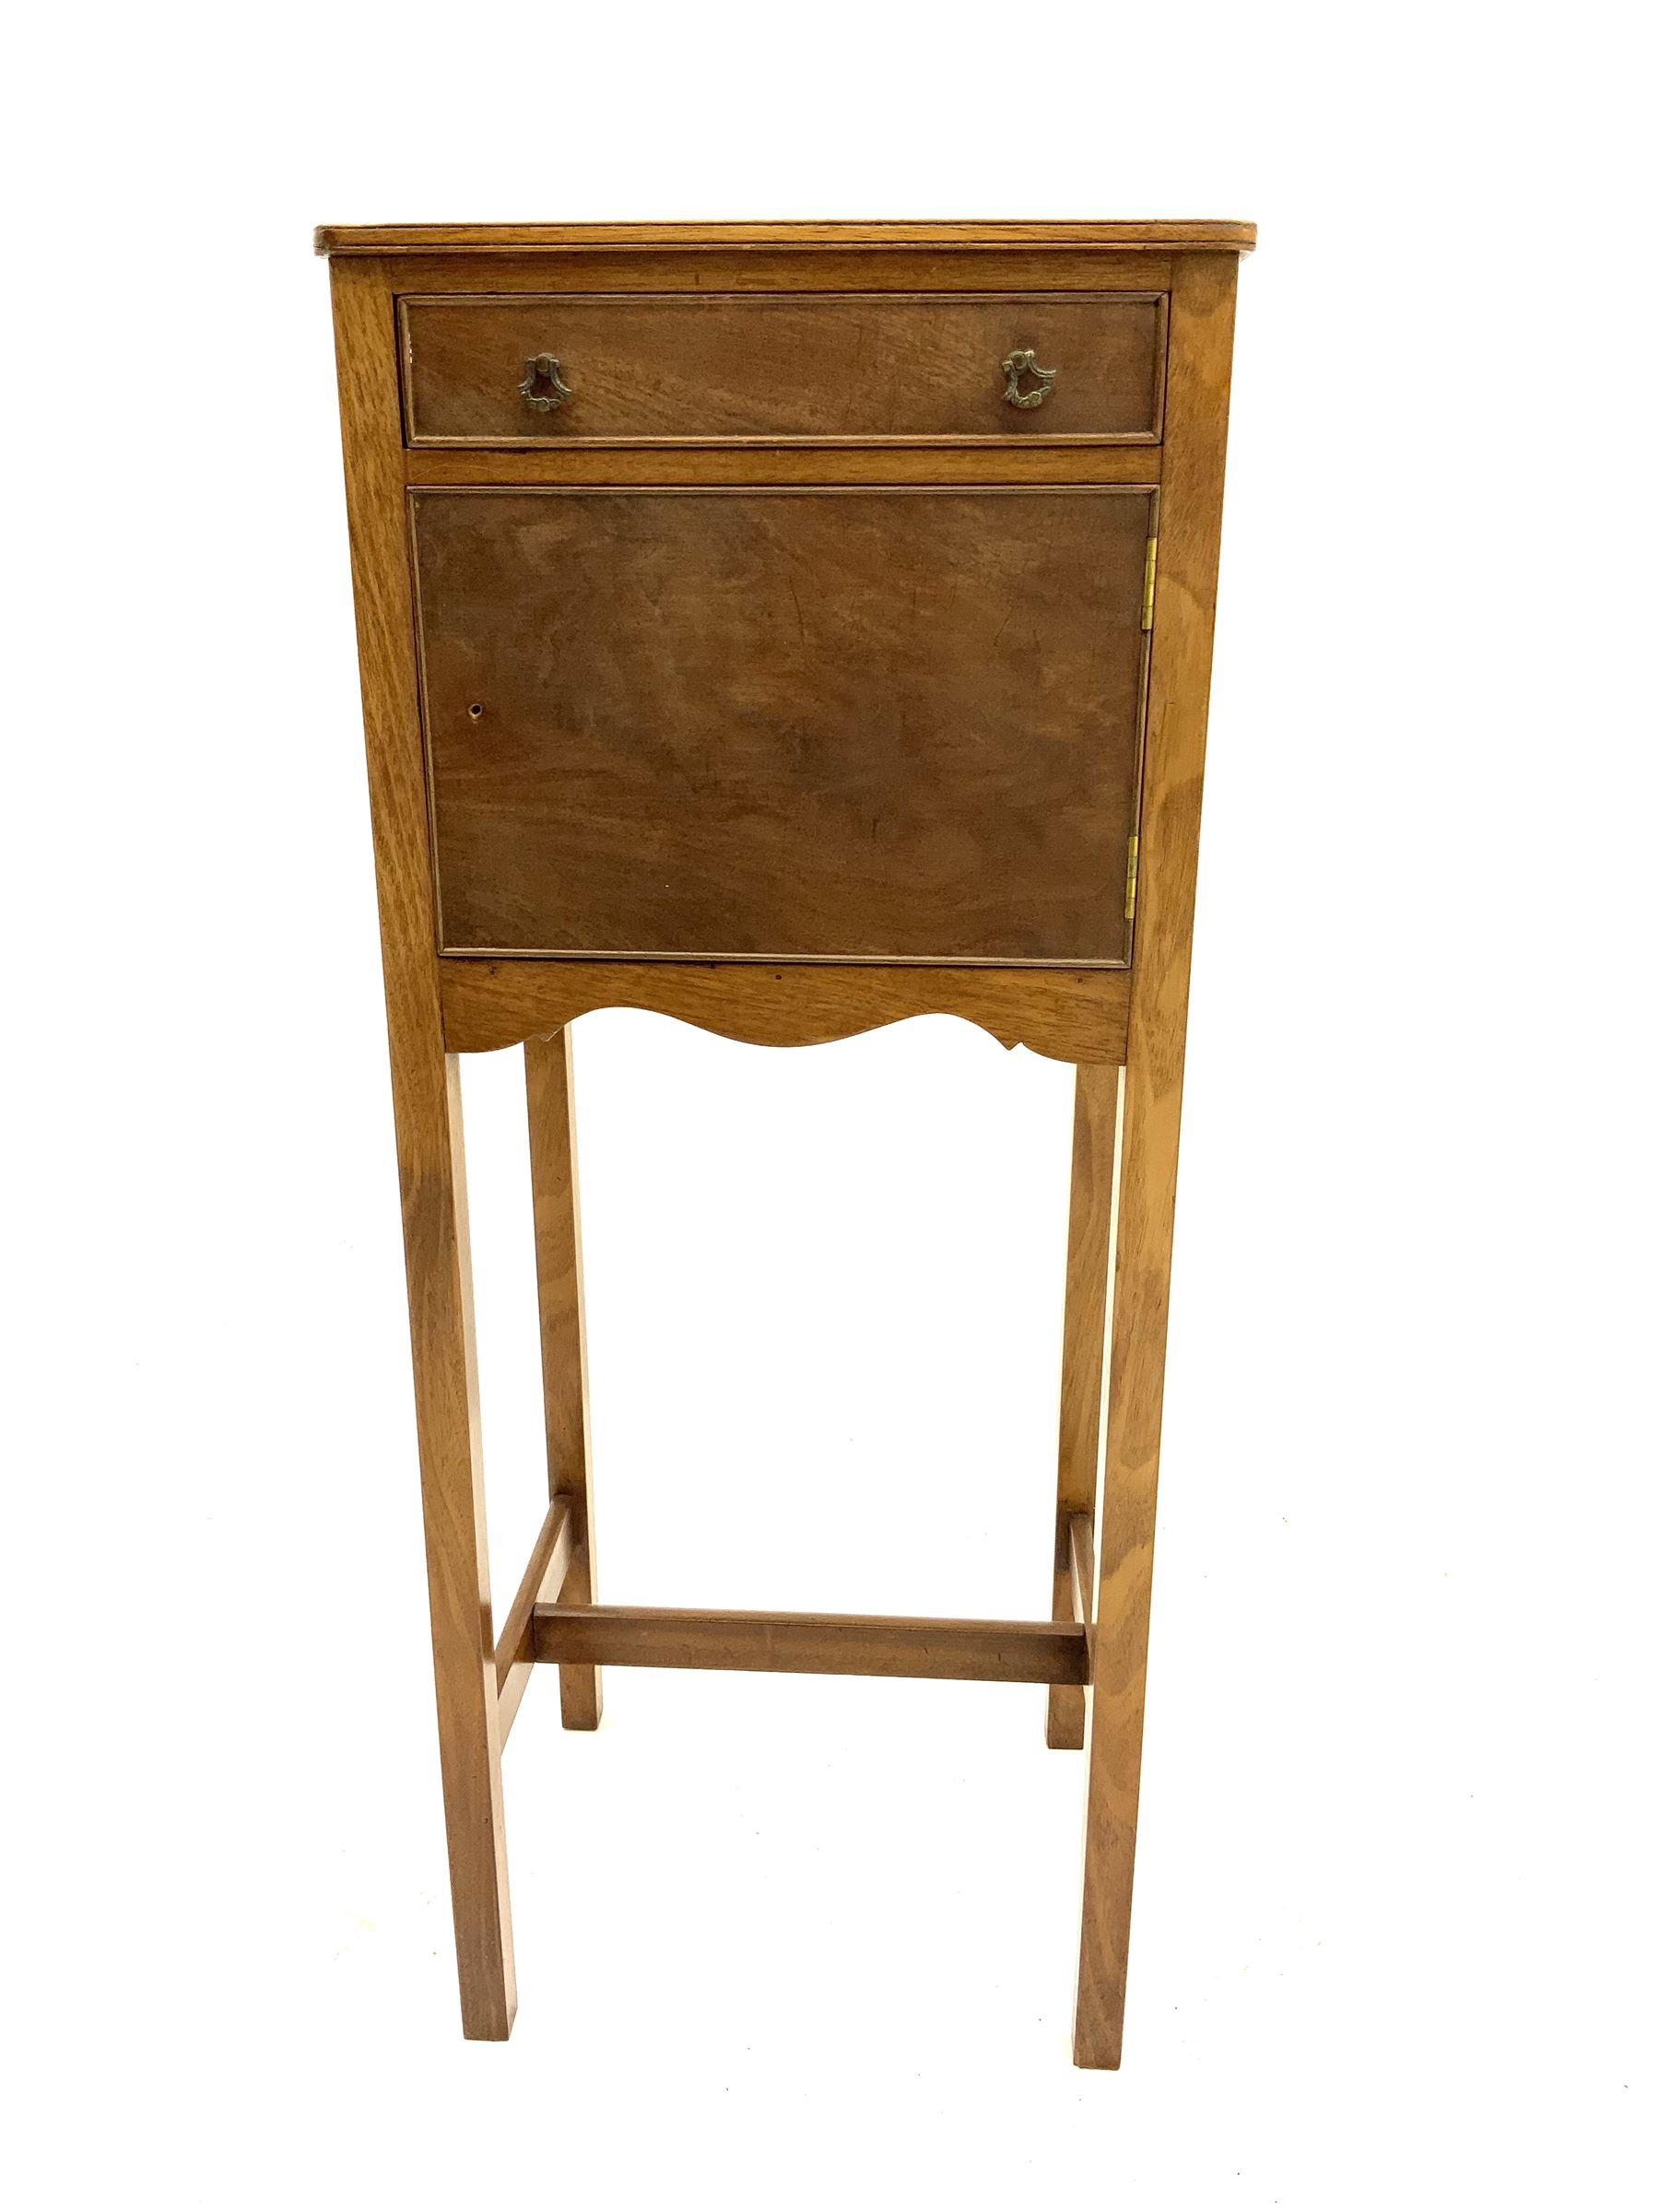 Early 20th century mahogany bedside pot cupboard - Image 2 of 3